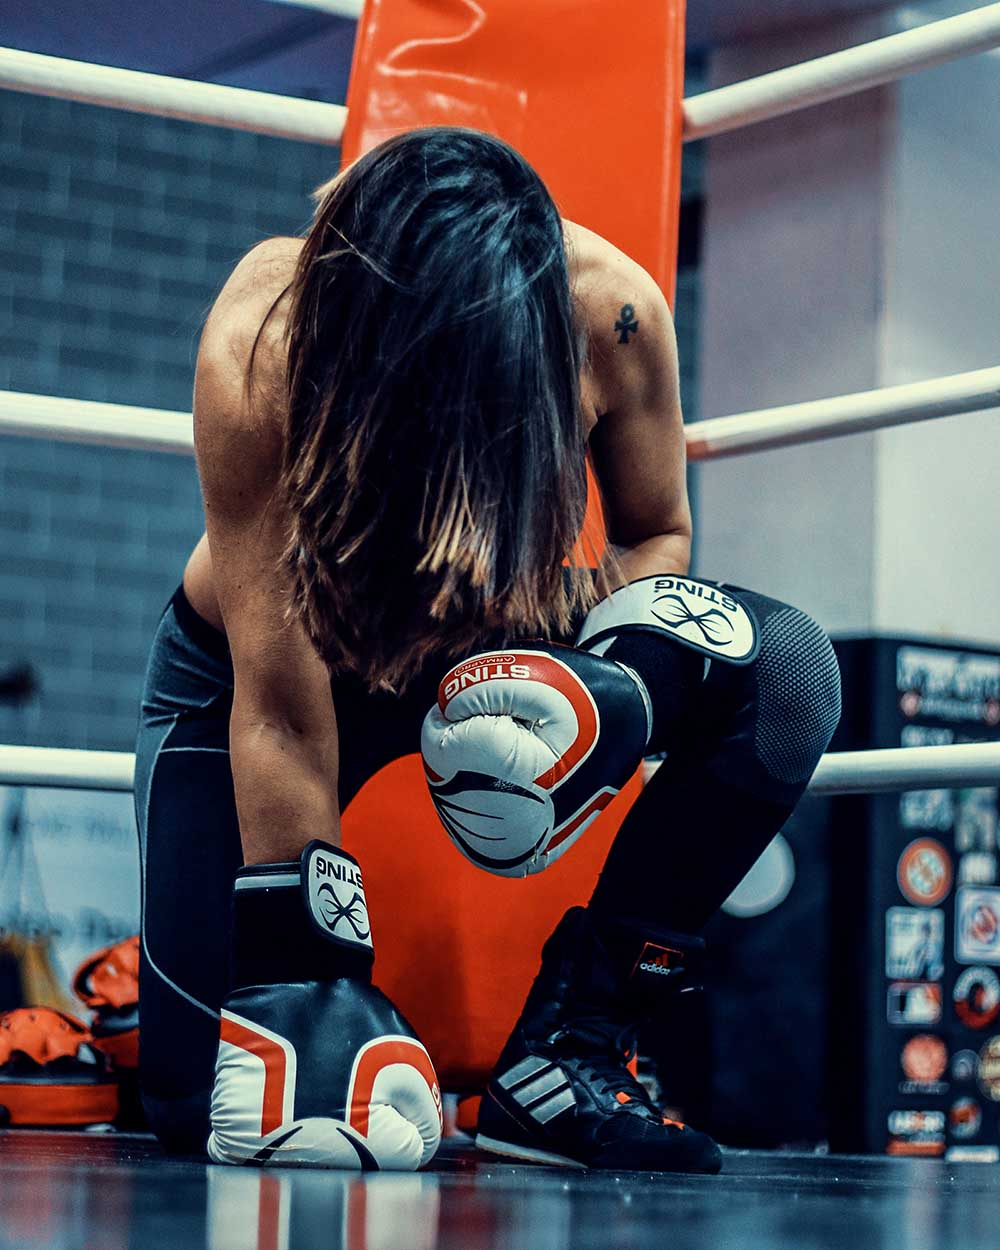 girl boxing in the ring